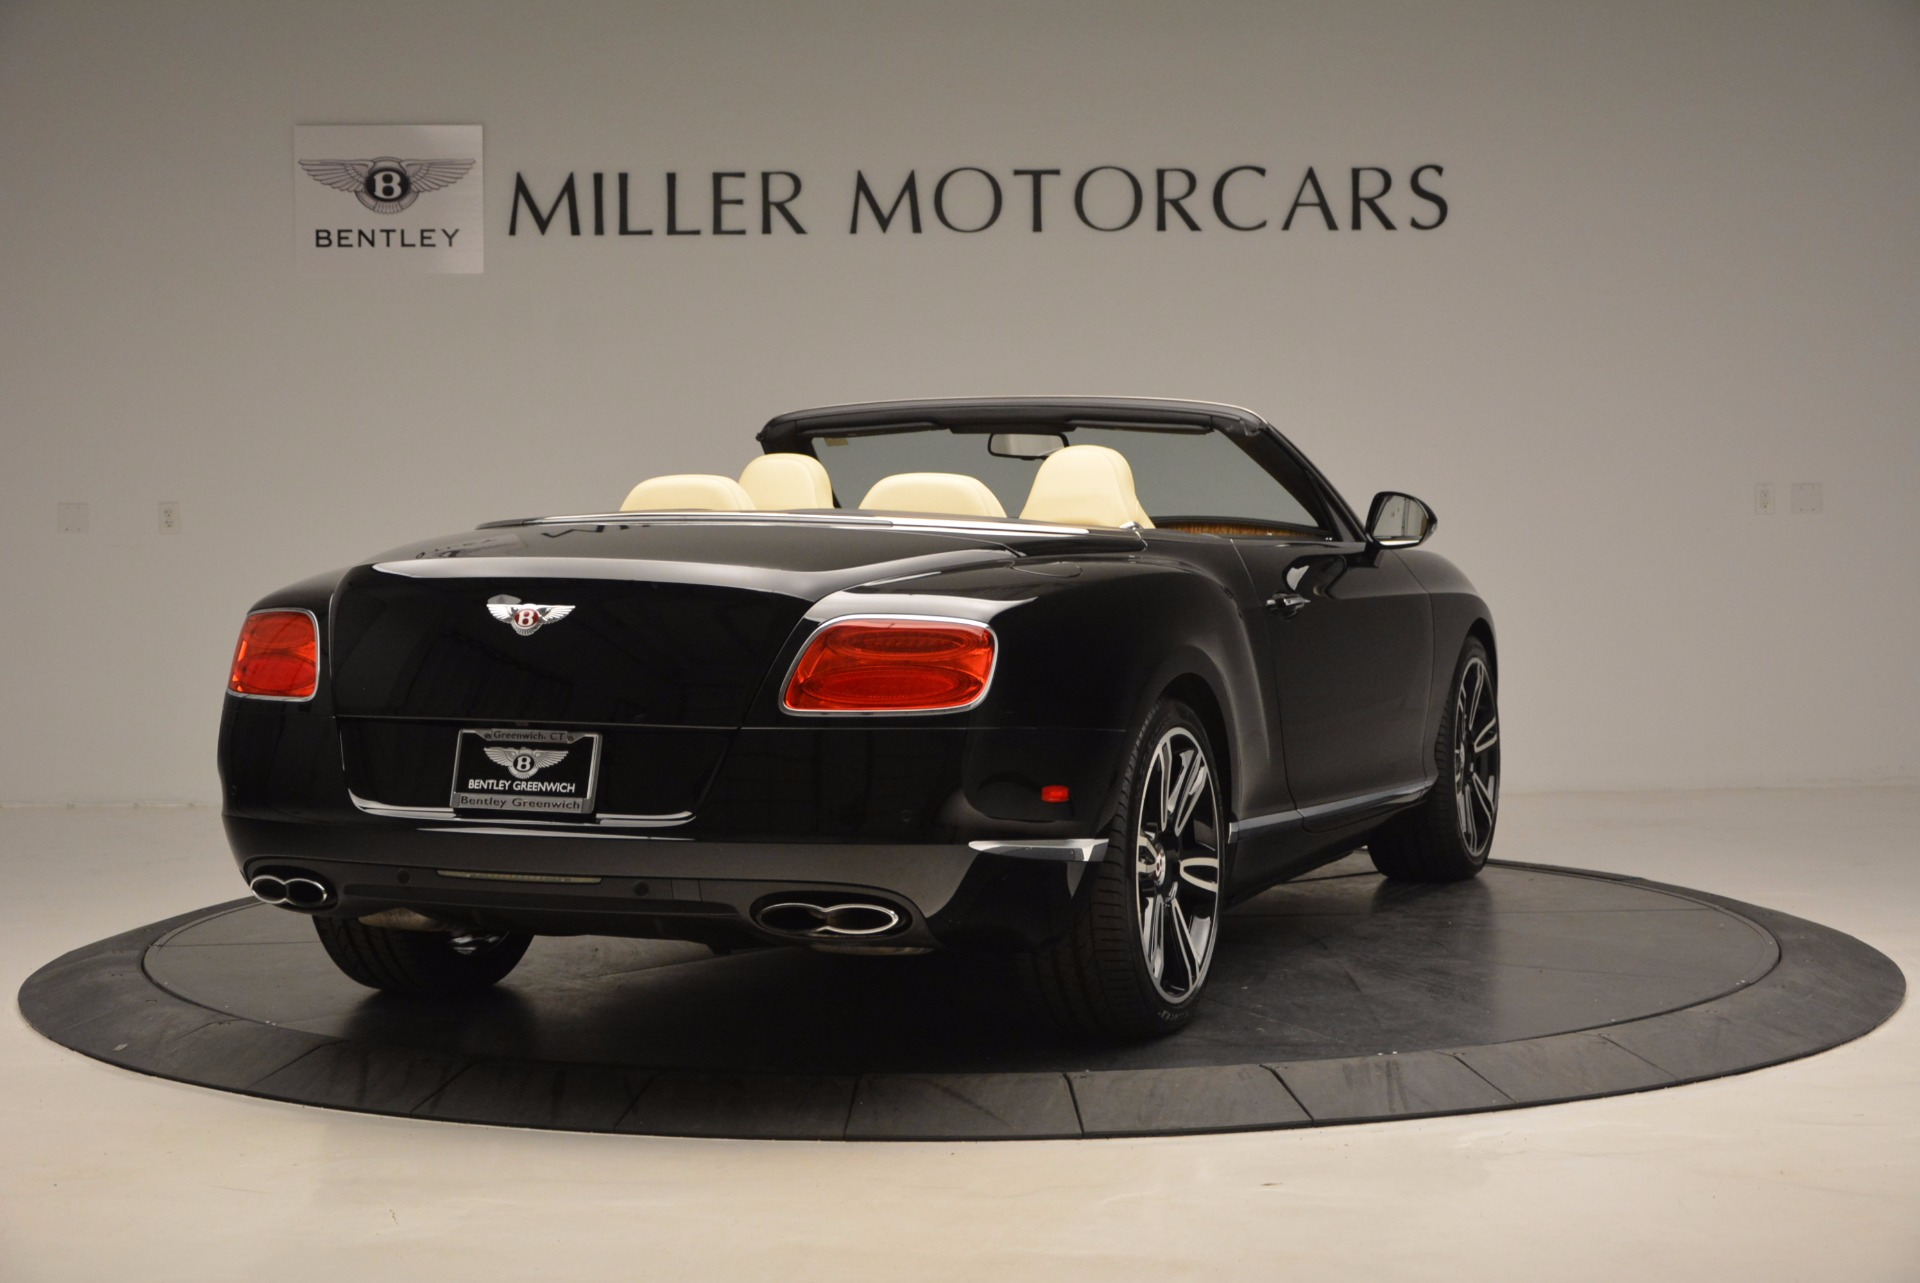 Used 2013 Bentley Continental GT V8 For Sale In Greenwich, CT. Alfa Romeo of Greenwich, 7144 945_p8